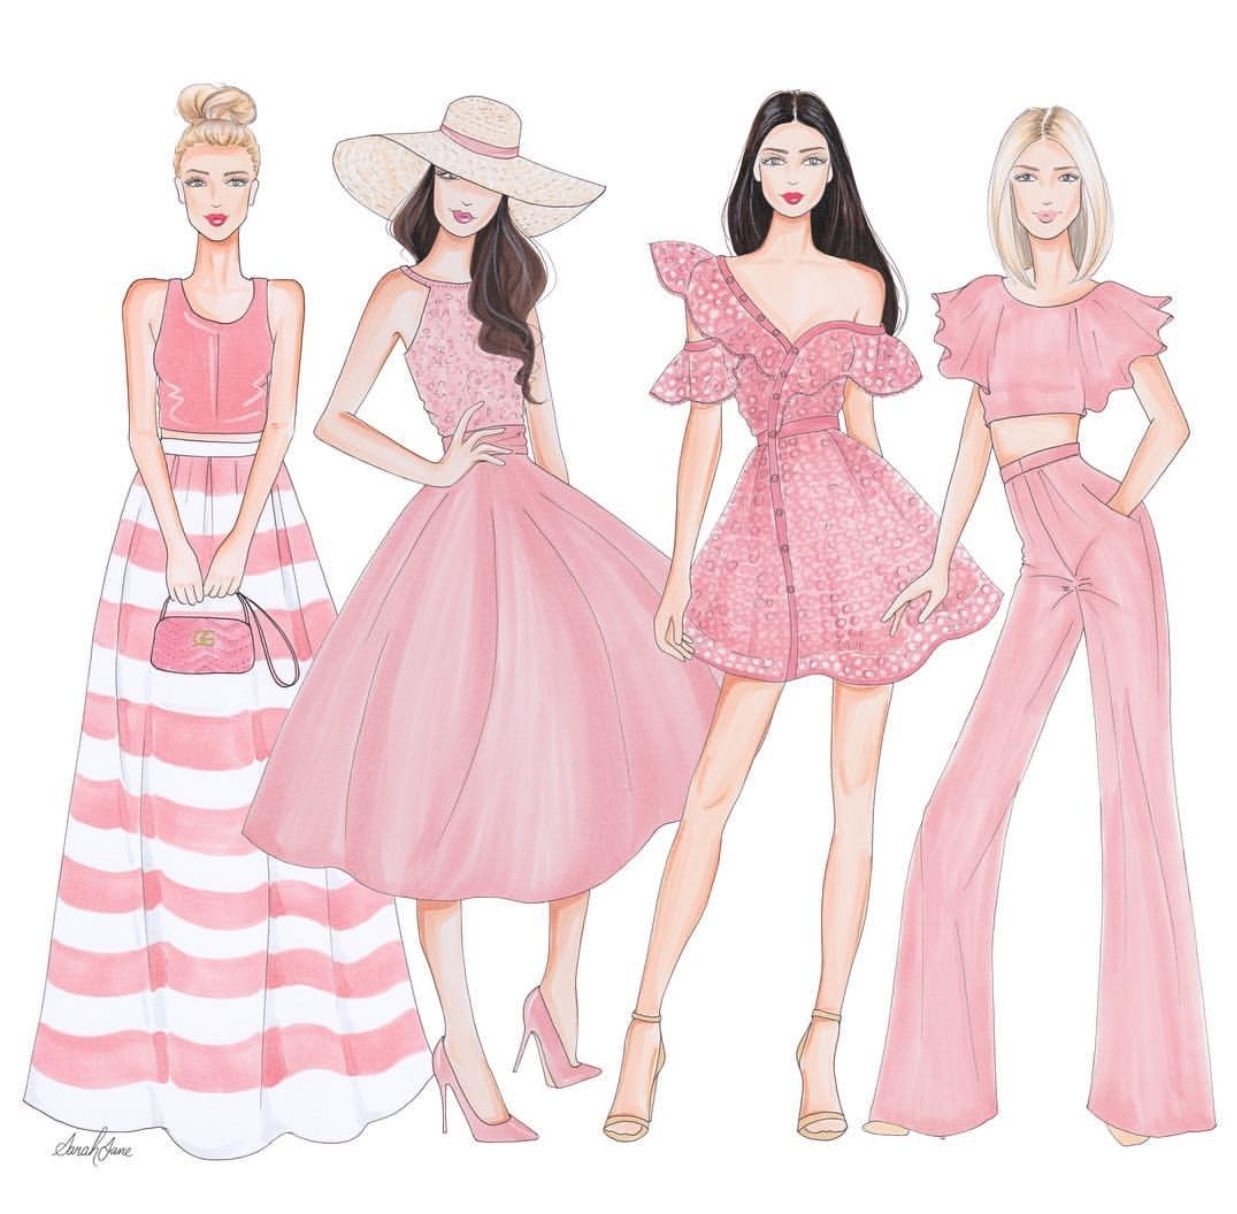 Jane #FashionIllustrations |Be Inspirational ❥|Mz. Manerz: Being well dressed ...